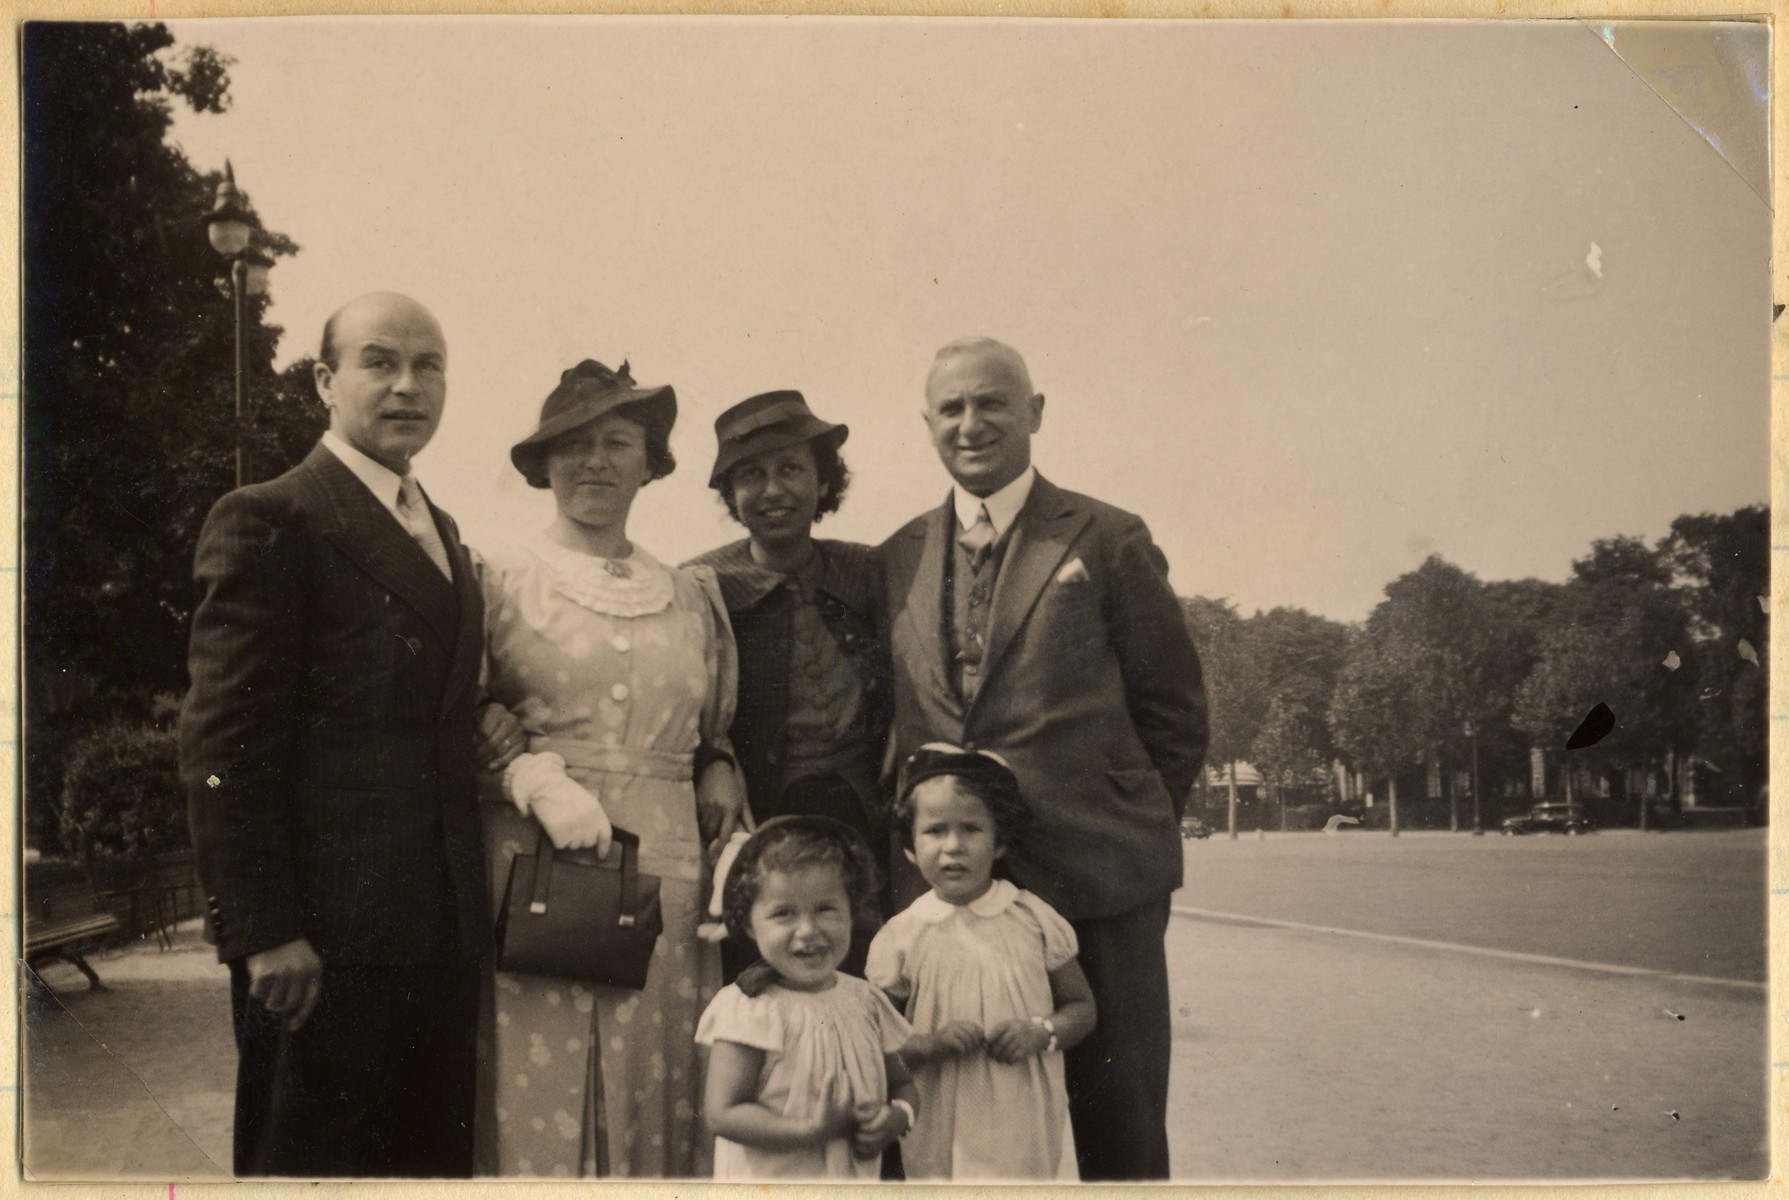 The Van Weenen family visits the Mendels family in Paris.  Standing in front (left to right) are Jacqueline and Manuela Mendels.  Standing behind them (left to right) are Frits Mendels, Thea van Weenen, Ellen Mendels, and Albert Van Weenen.  Thea van Weenen later perished in Sobibor.